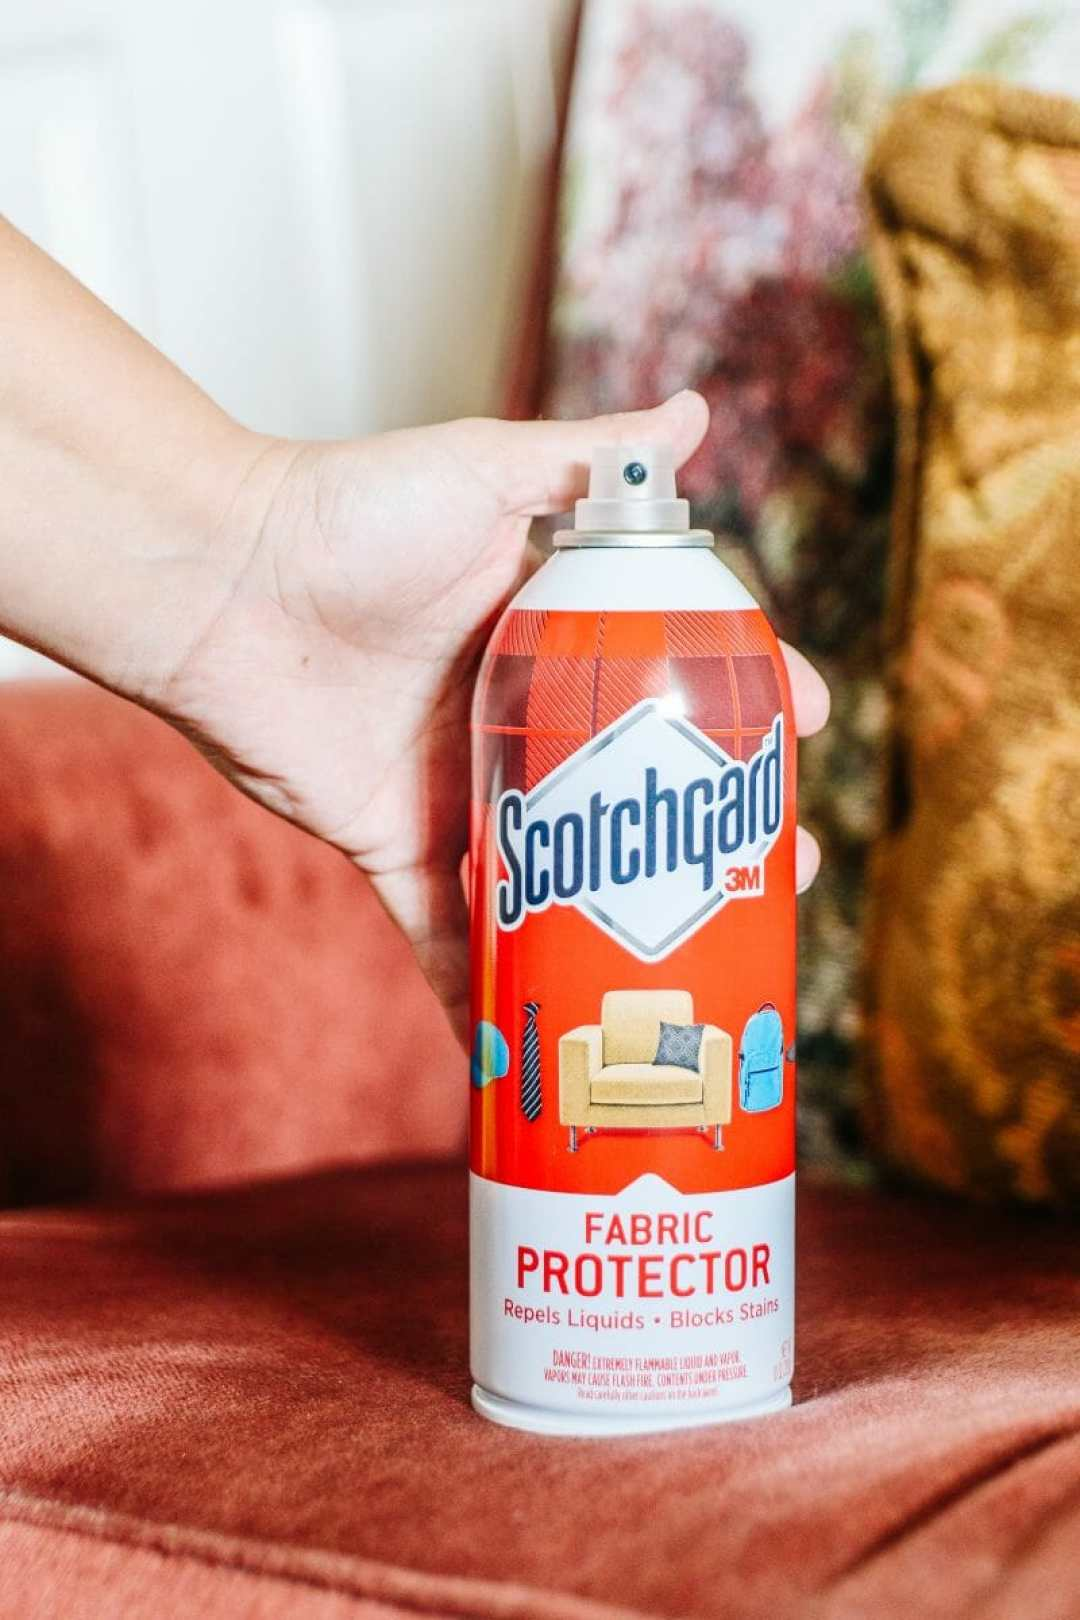 Spring Cleaning With 3M Scotch-Brite® & Scotchgard™ by KY Blogger JC Phelps